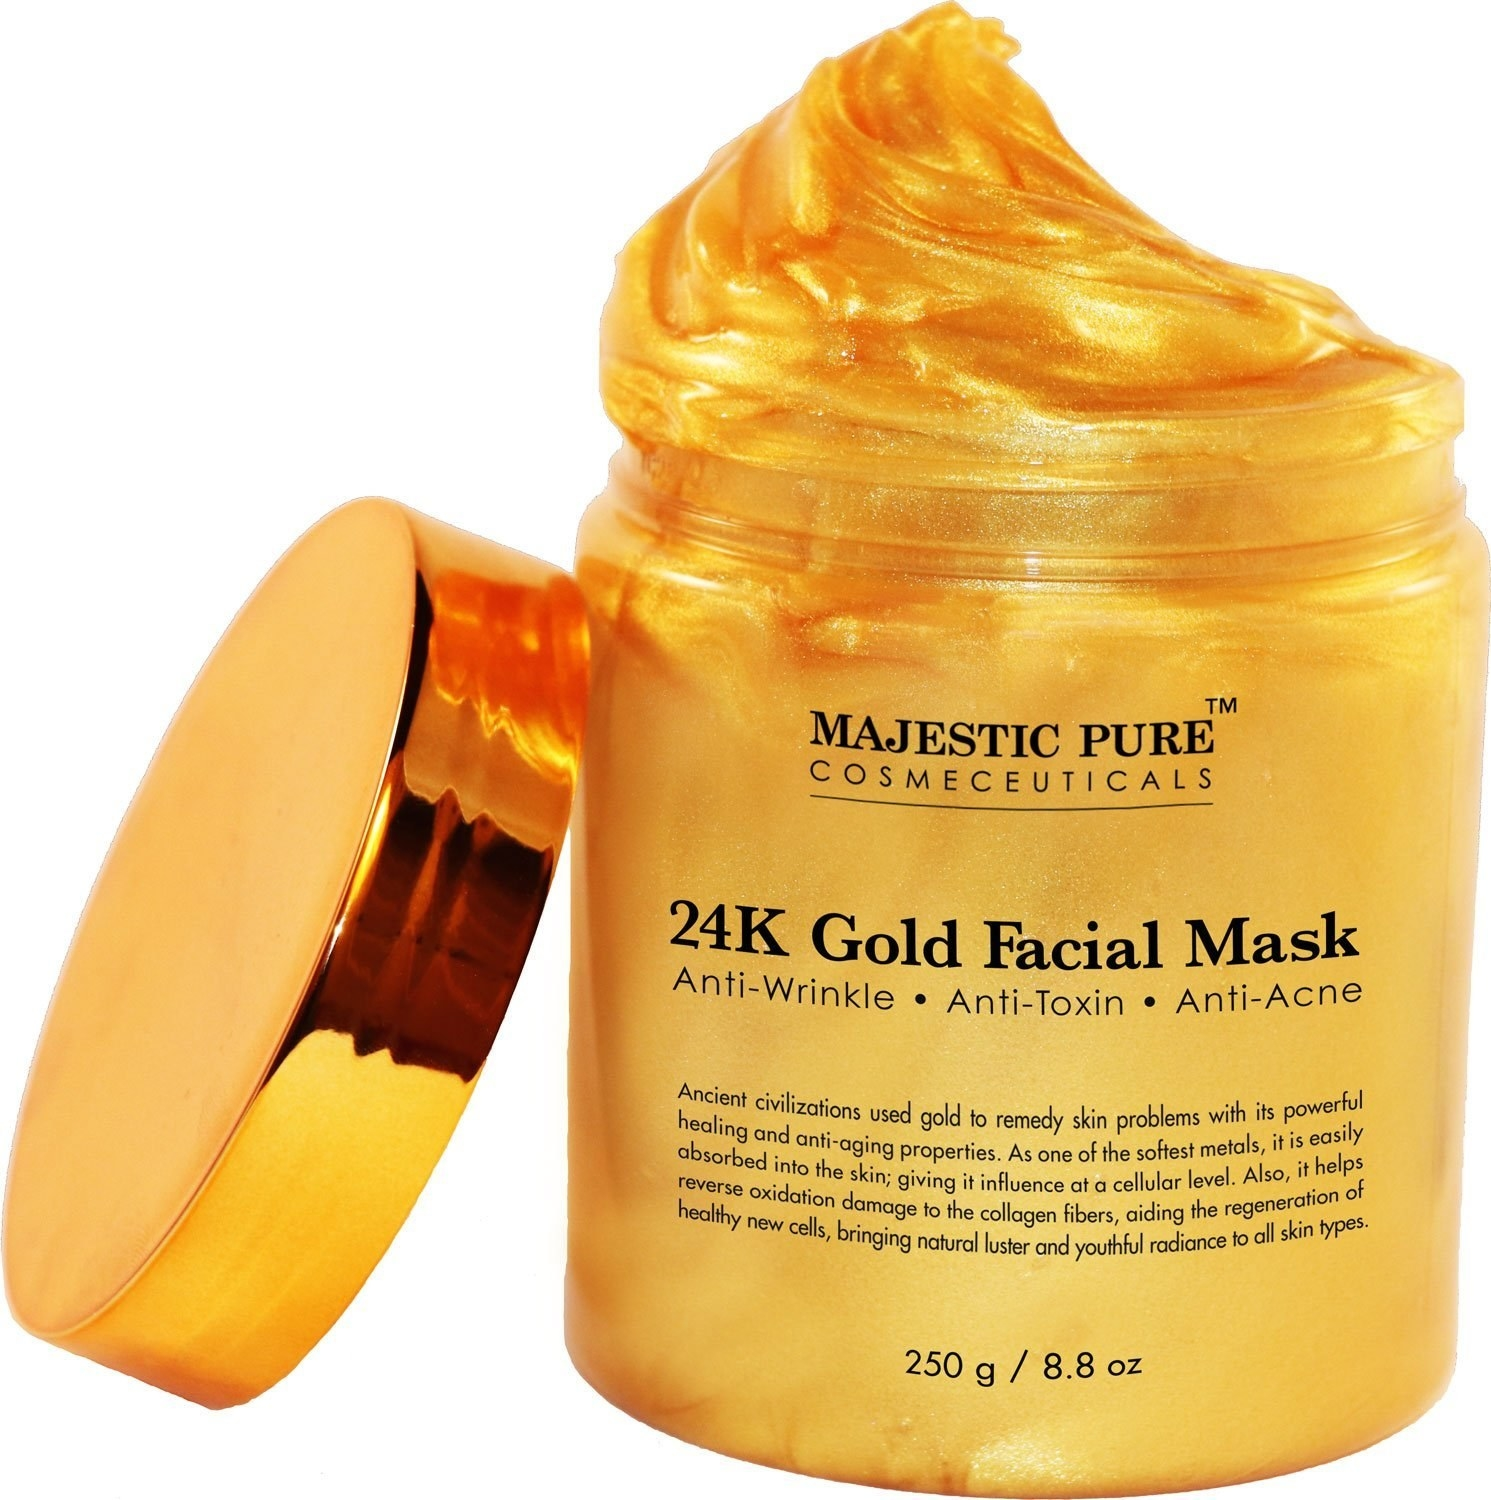 28 things thatll help you pretend to be a celeb 9 a 24k gold face mask made for brightening your highly photographable face and silicone brushes to help apply it because you live in the future nvjuhfo Images